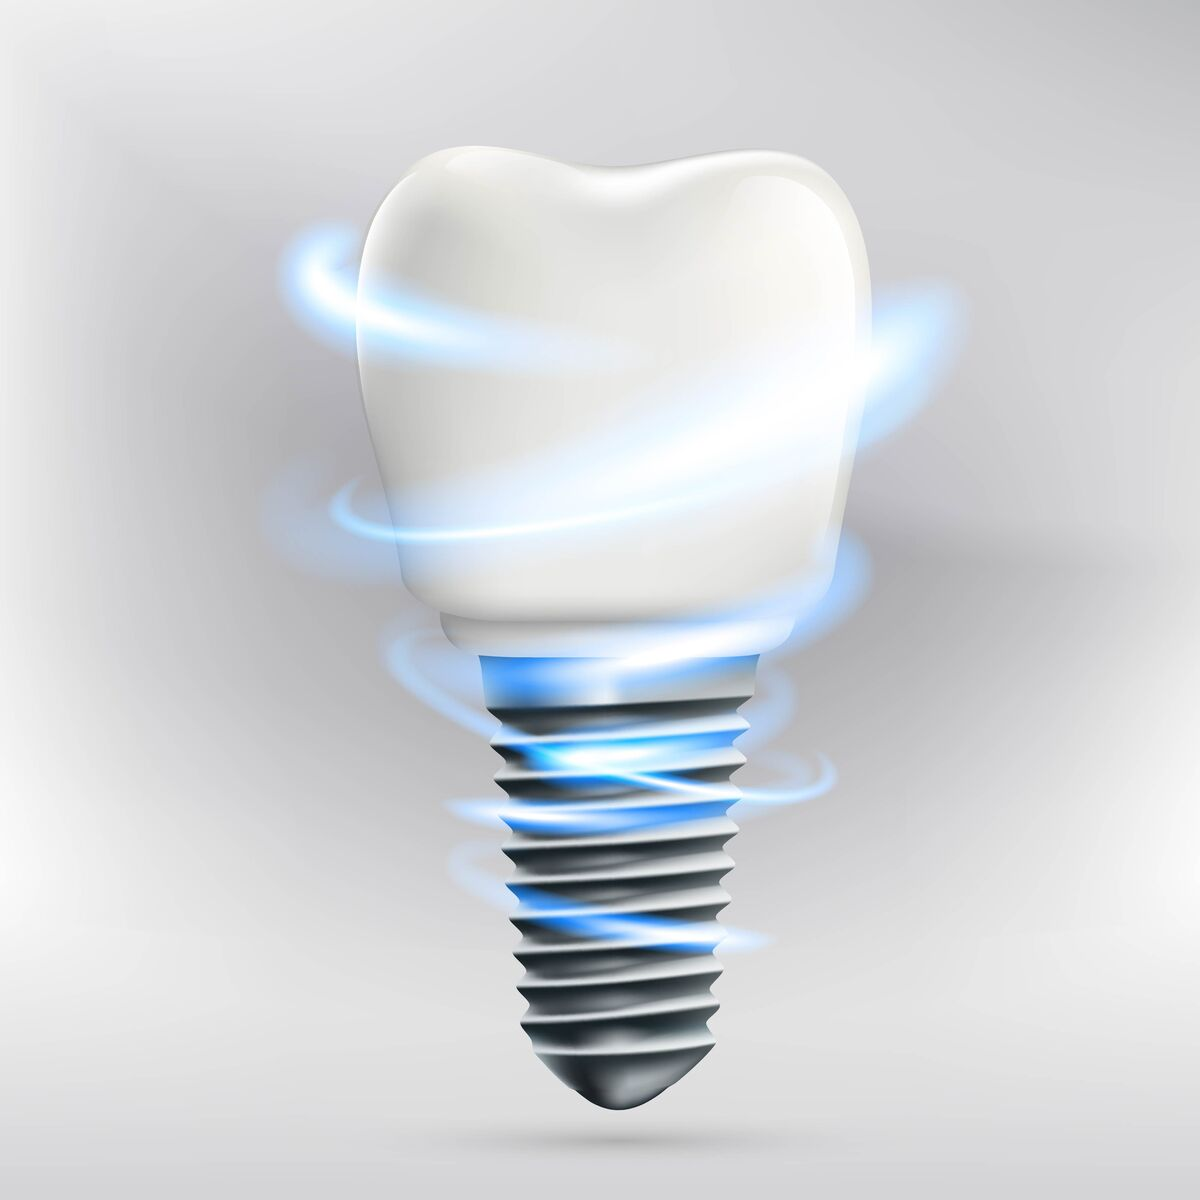 What are the best dental implants in aventura?